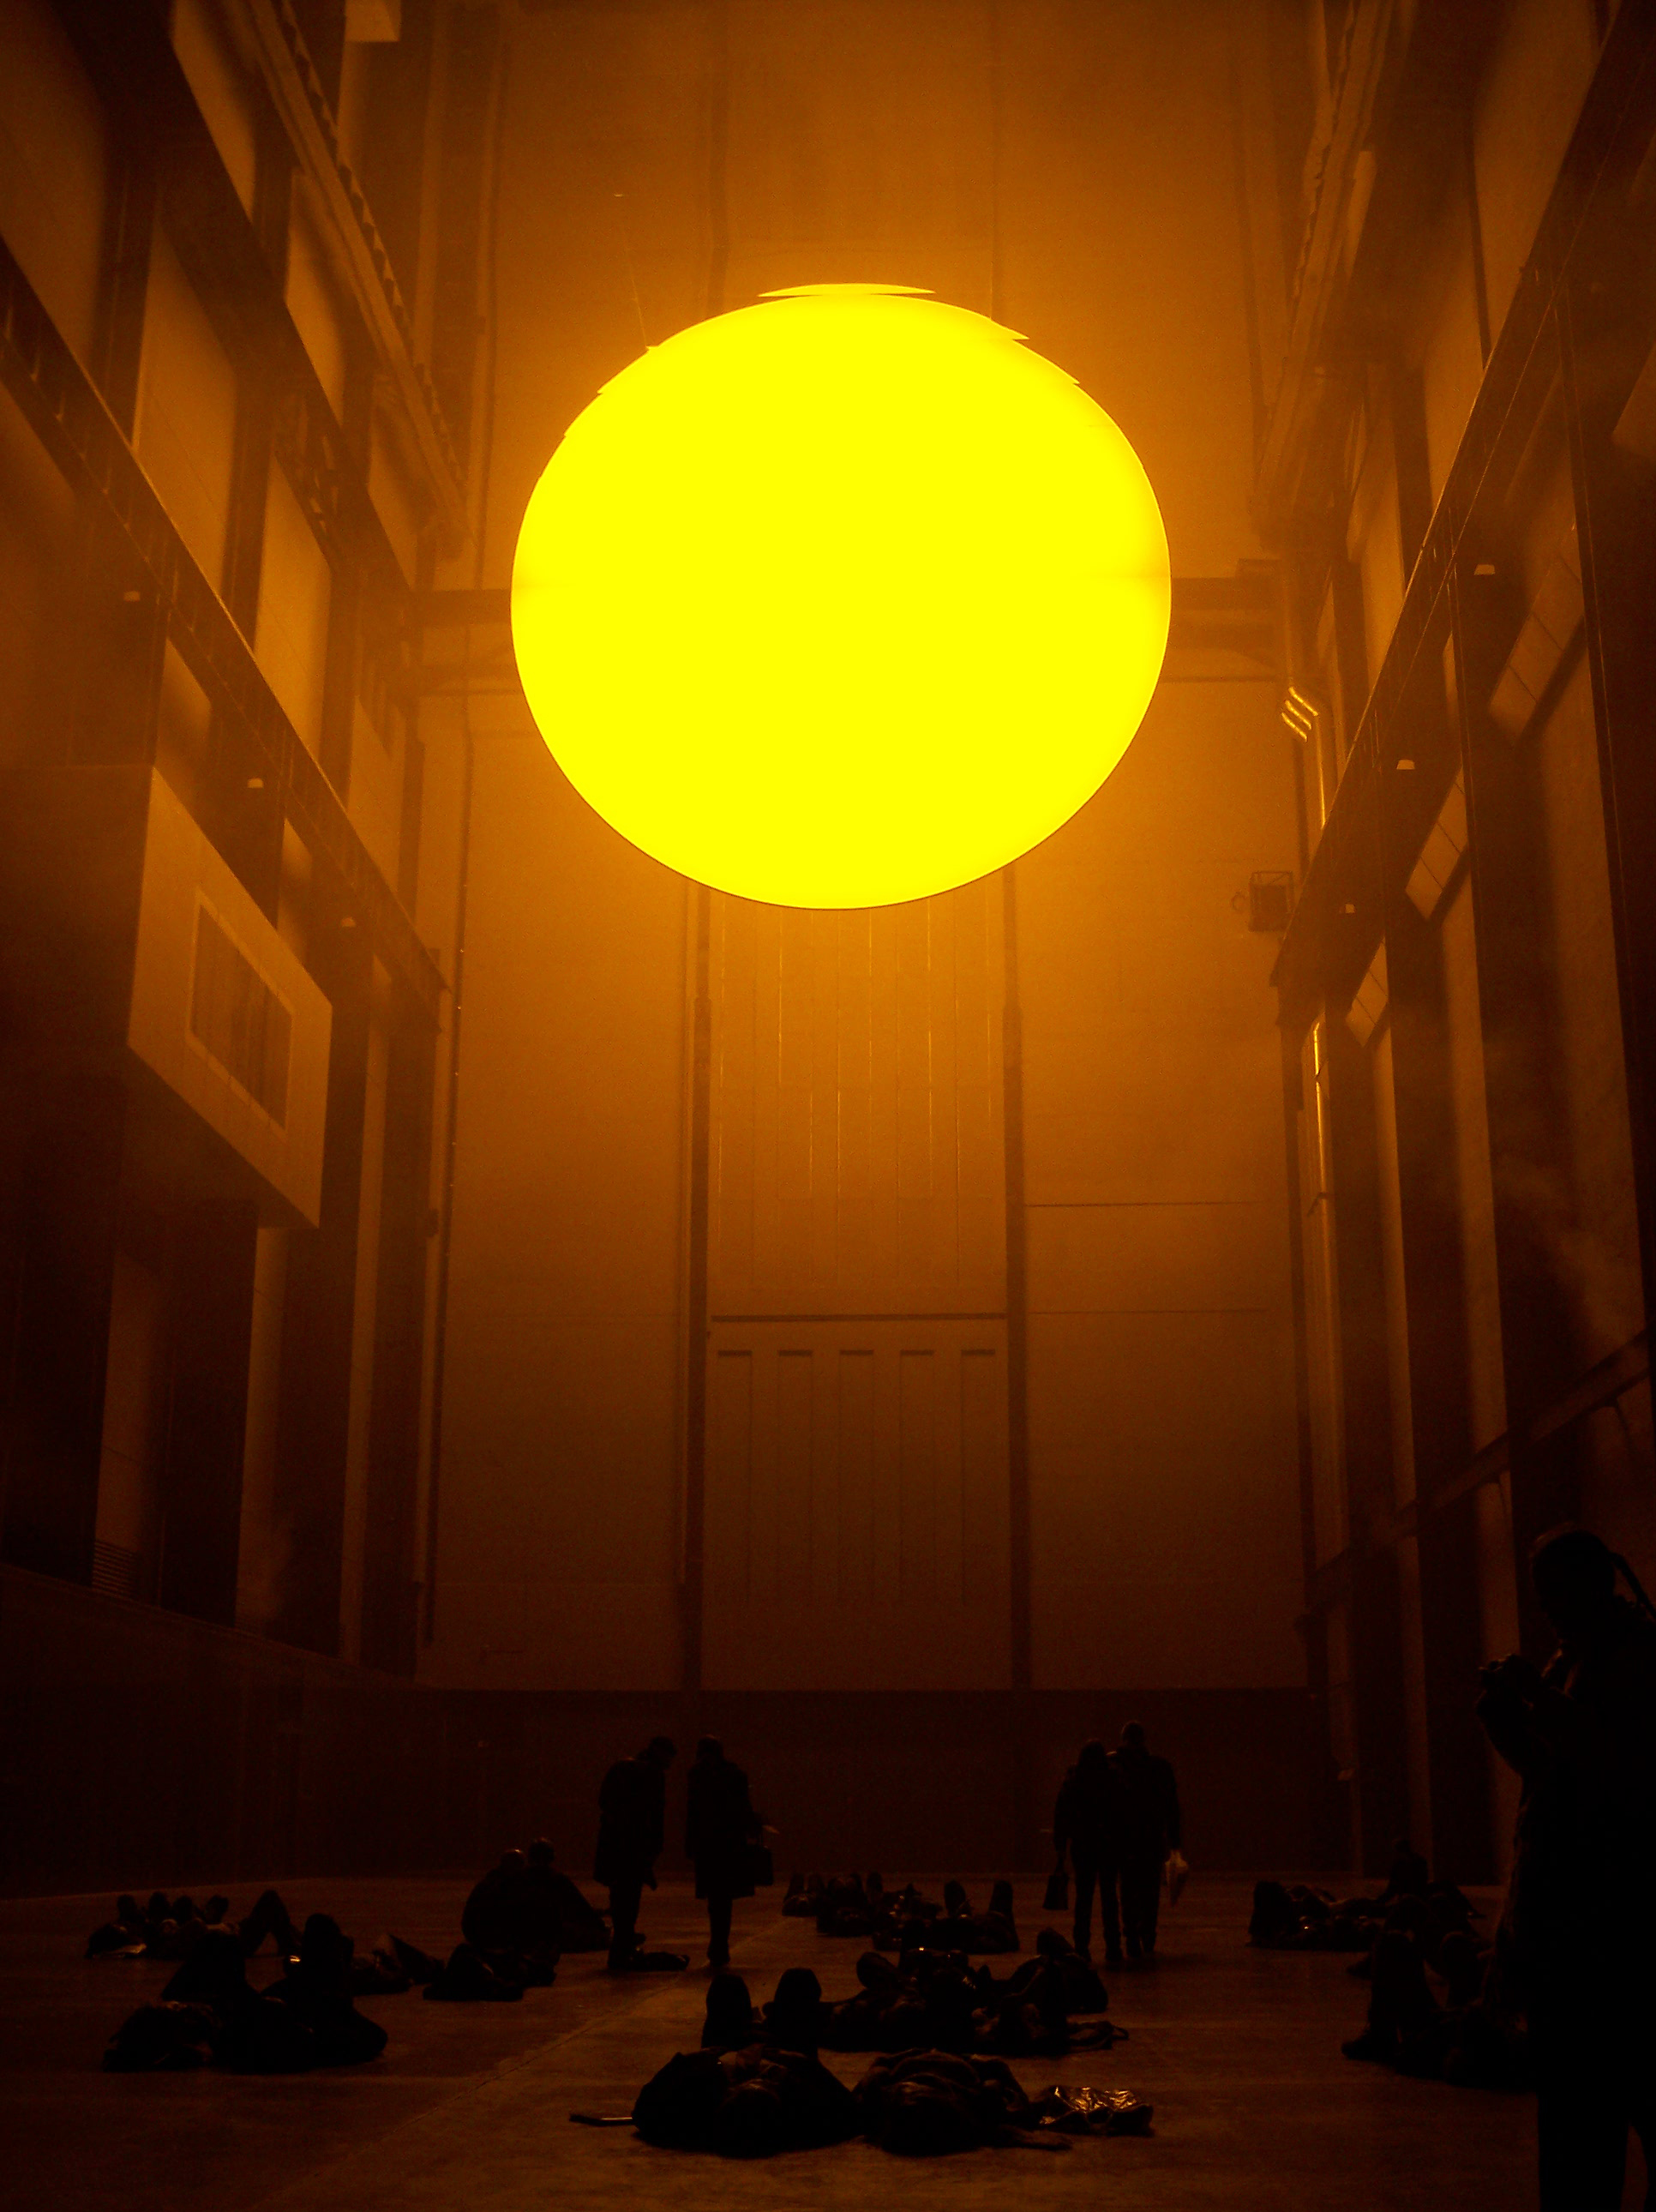 2004_01-08_Olafur-Eliasson_The-Weather-Project-[Tate-Modern]_3_Photograph_James-Bulley.jpg